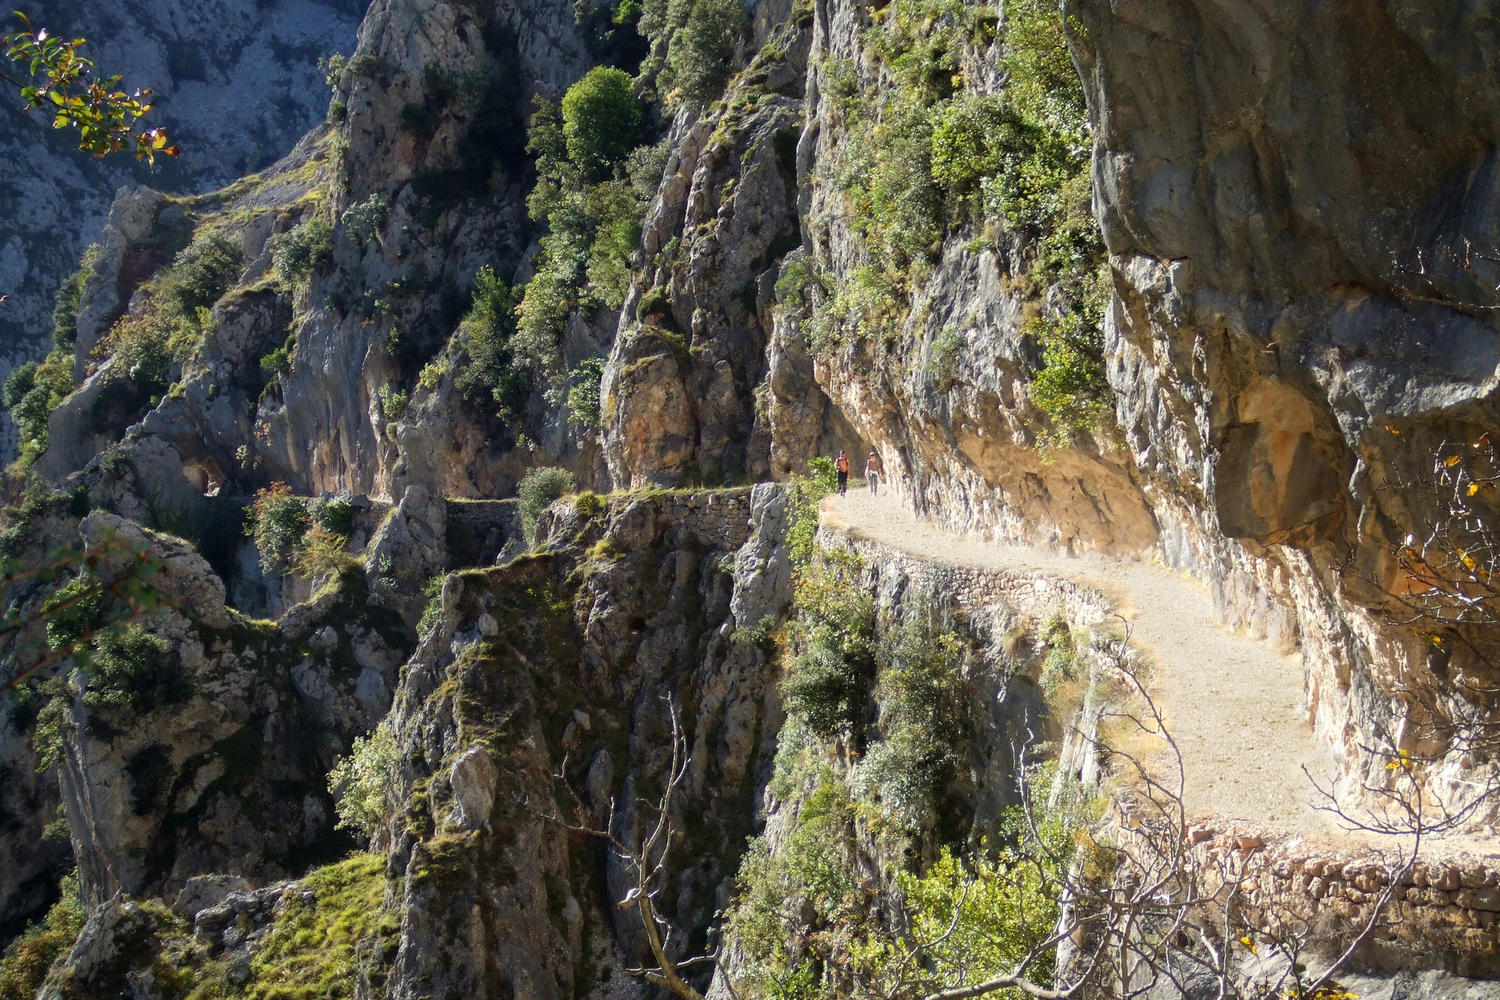 The spectacular Cares Gorge trail